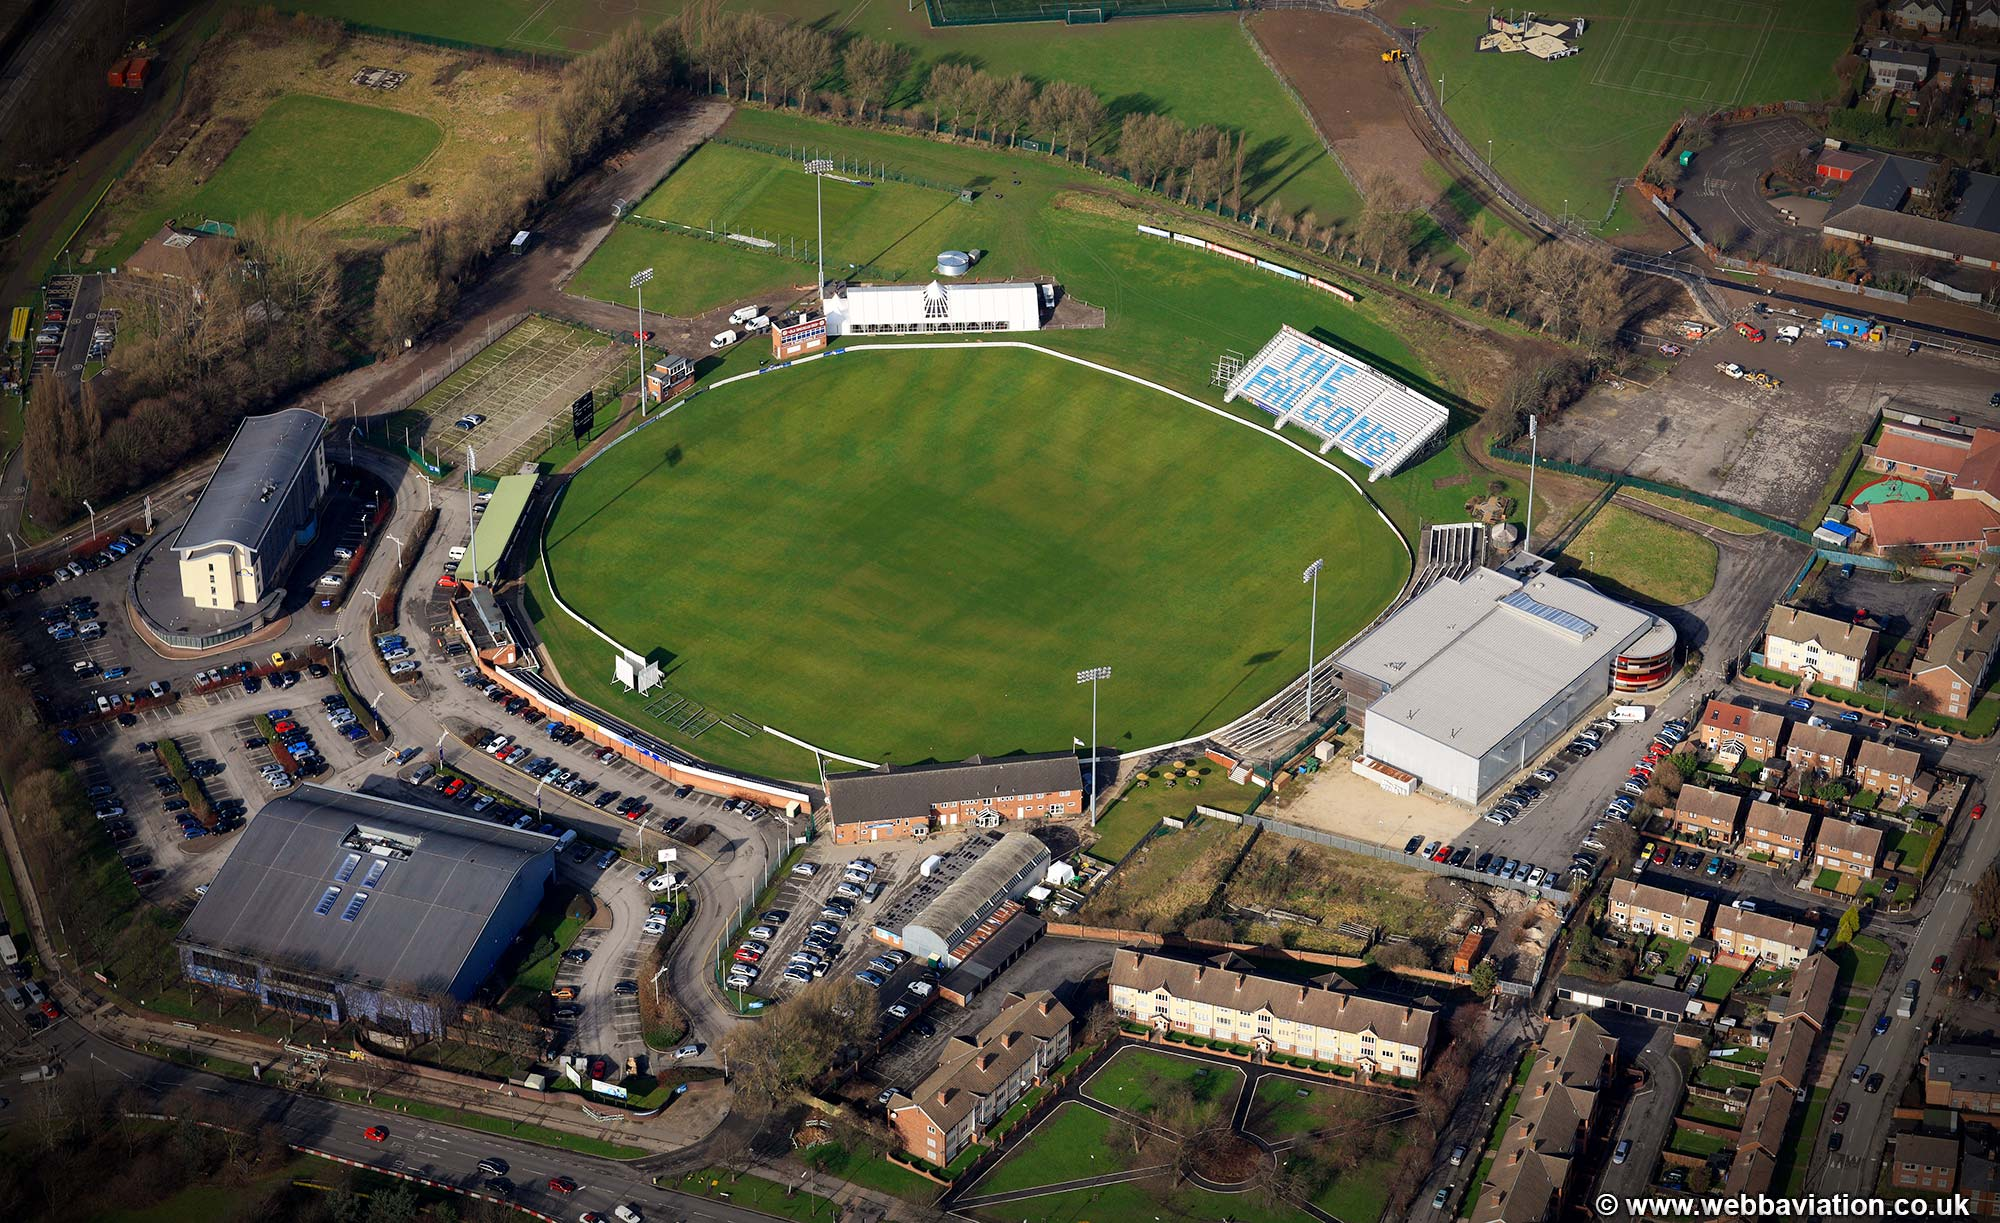 CricketGround-fb04657.jpg